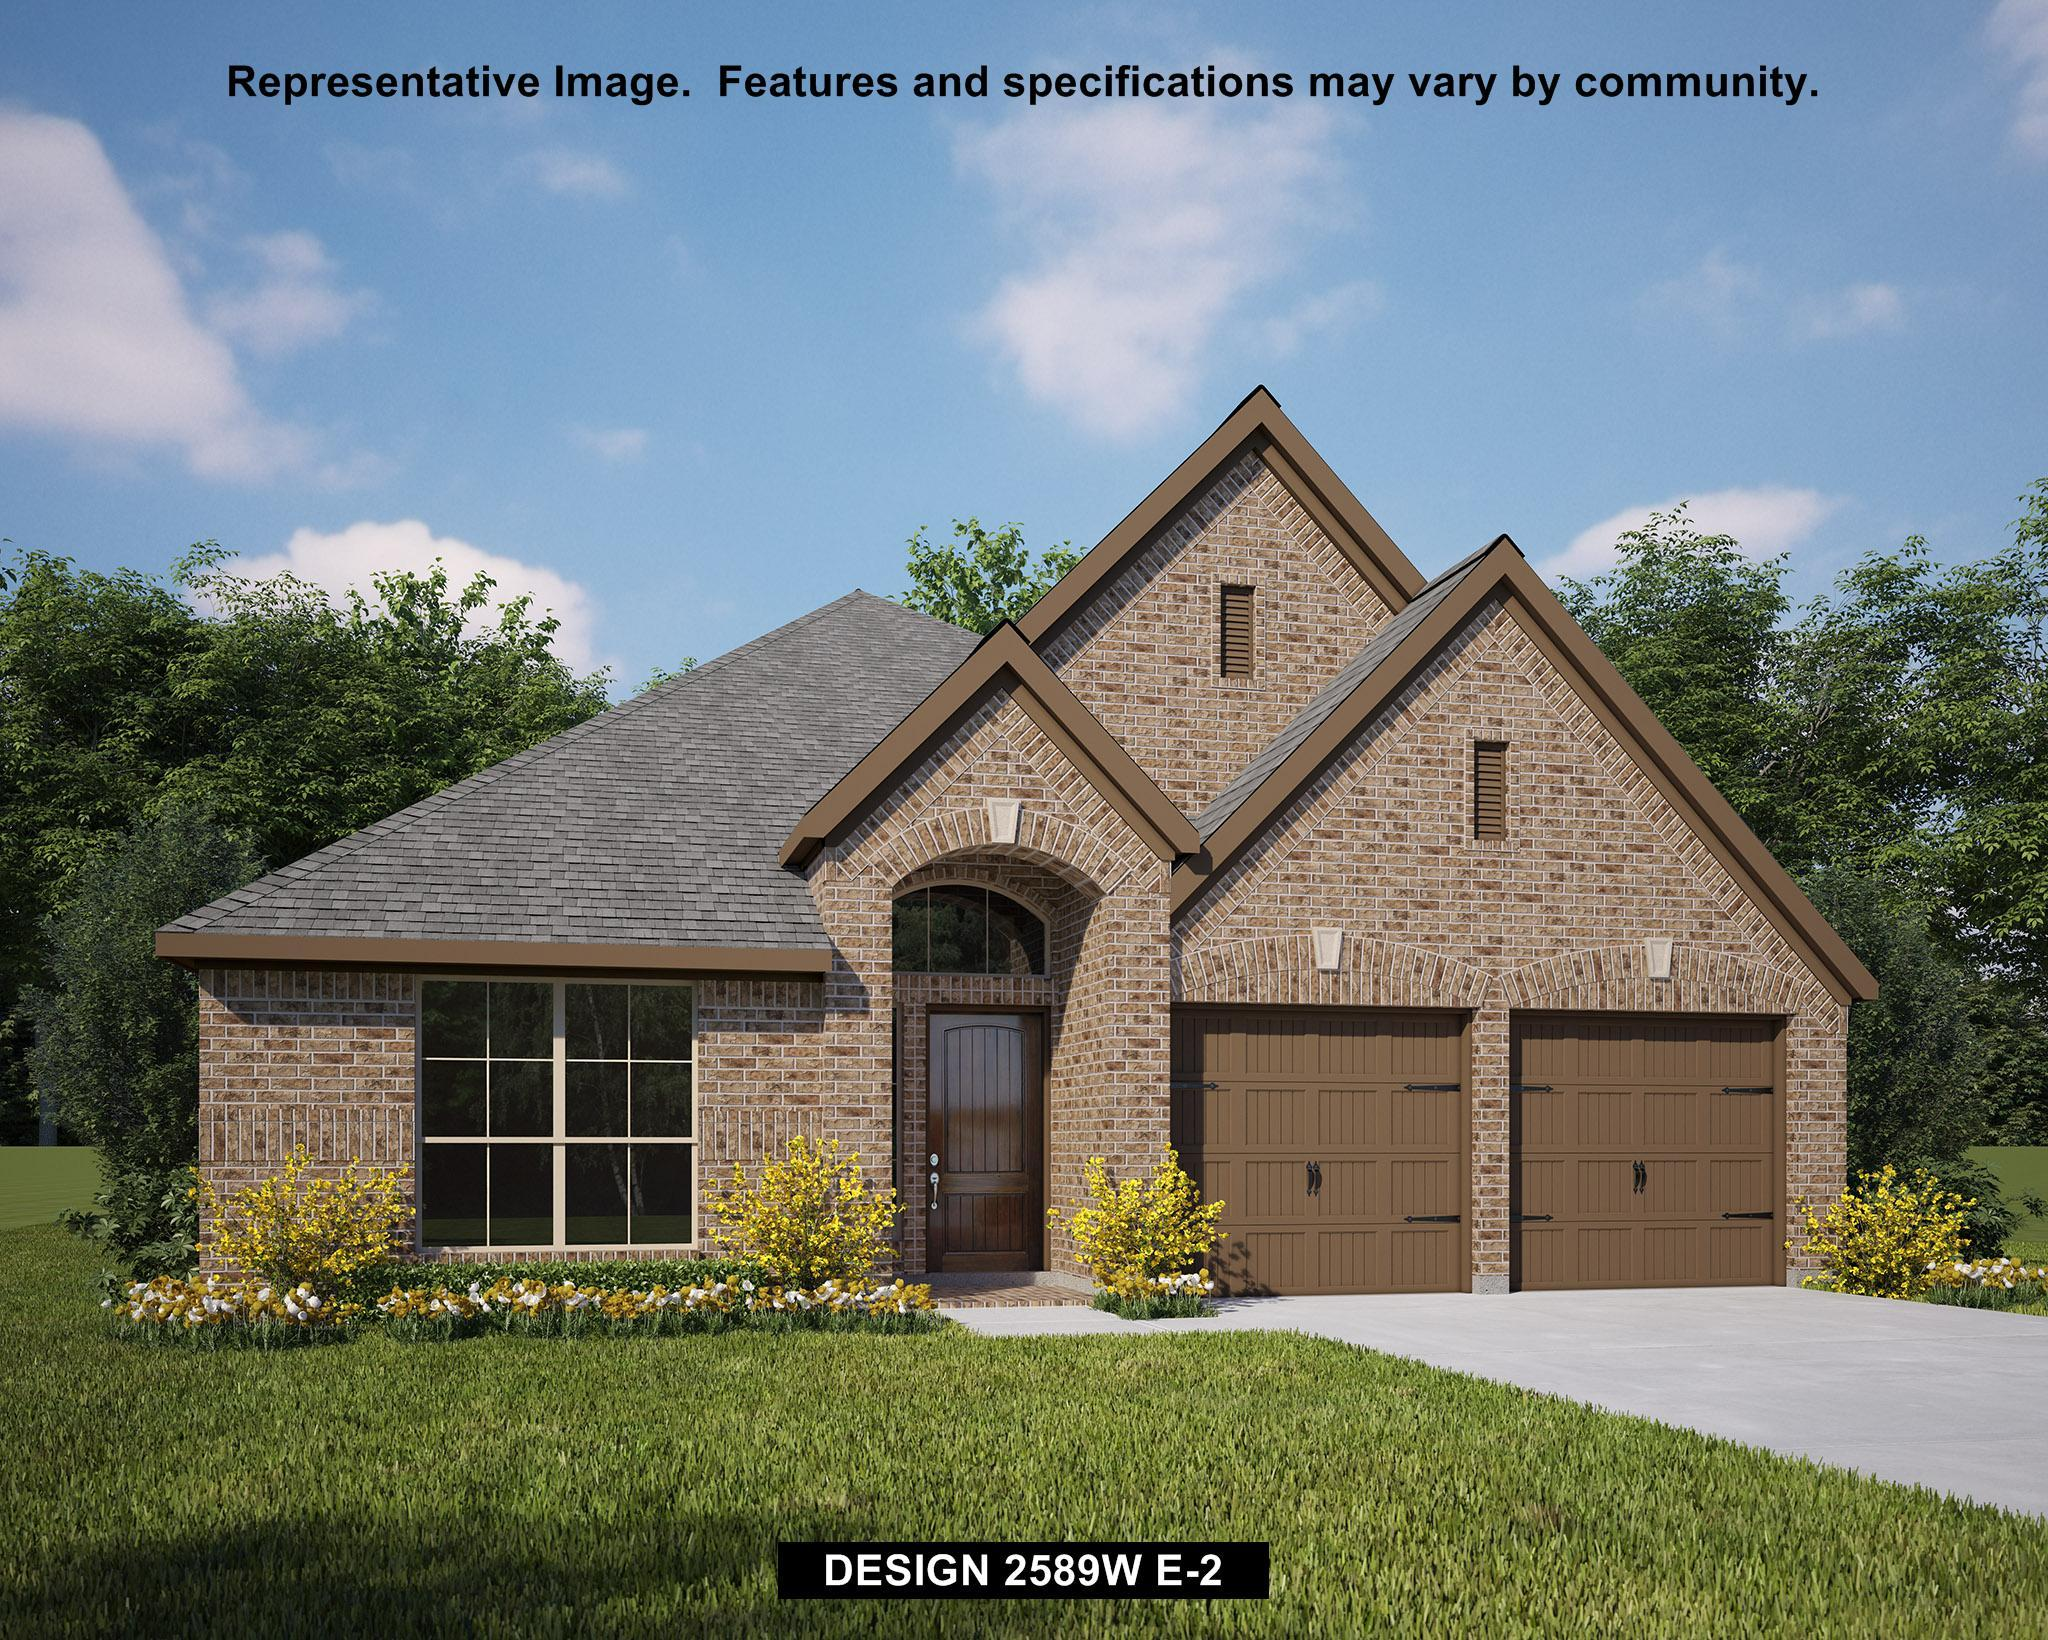 Single Family for Sale at Blanco Vista 45' - 2589w 120 Lacey Oak Loop San Marcos, Texas 78666 United States